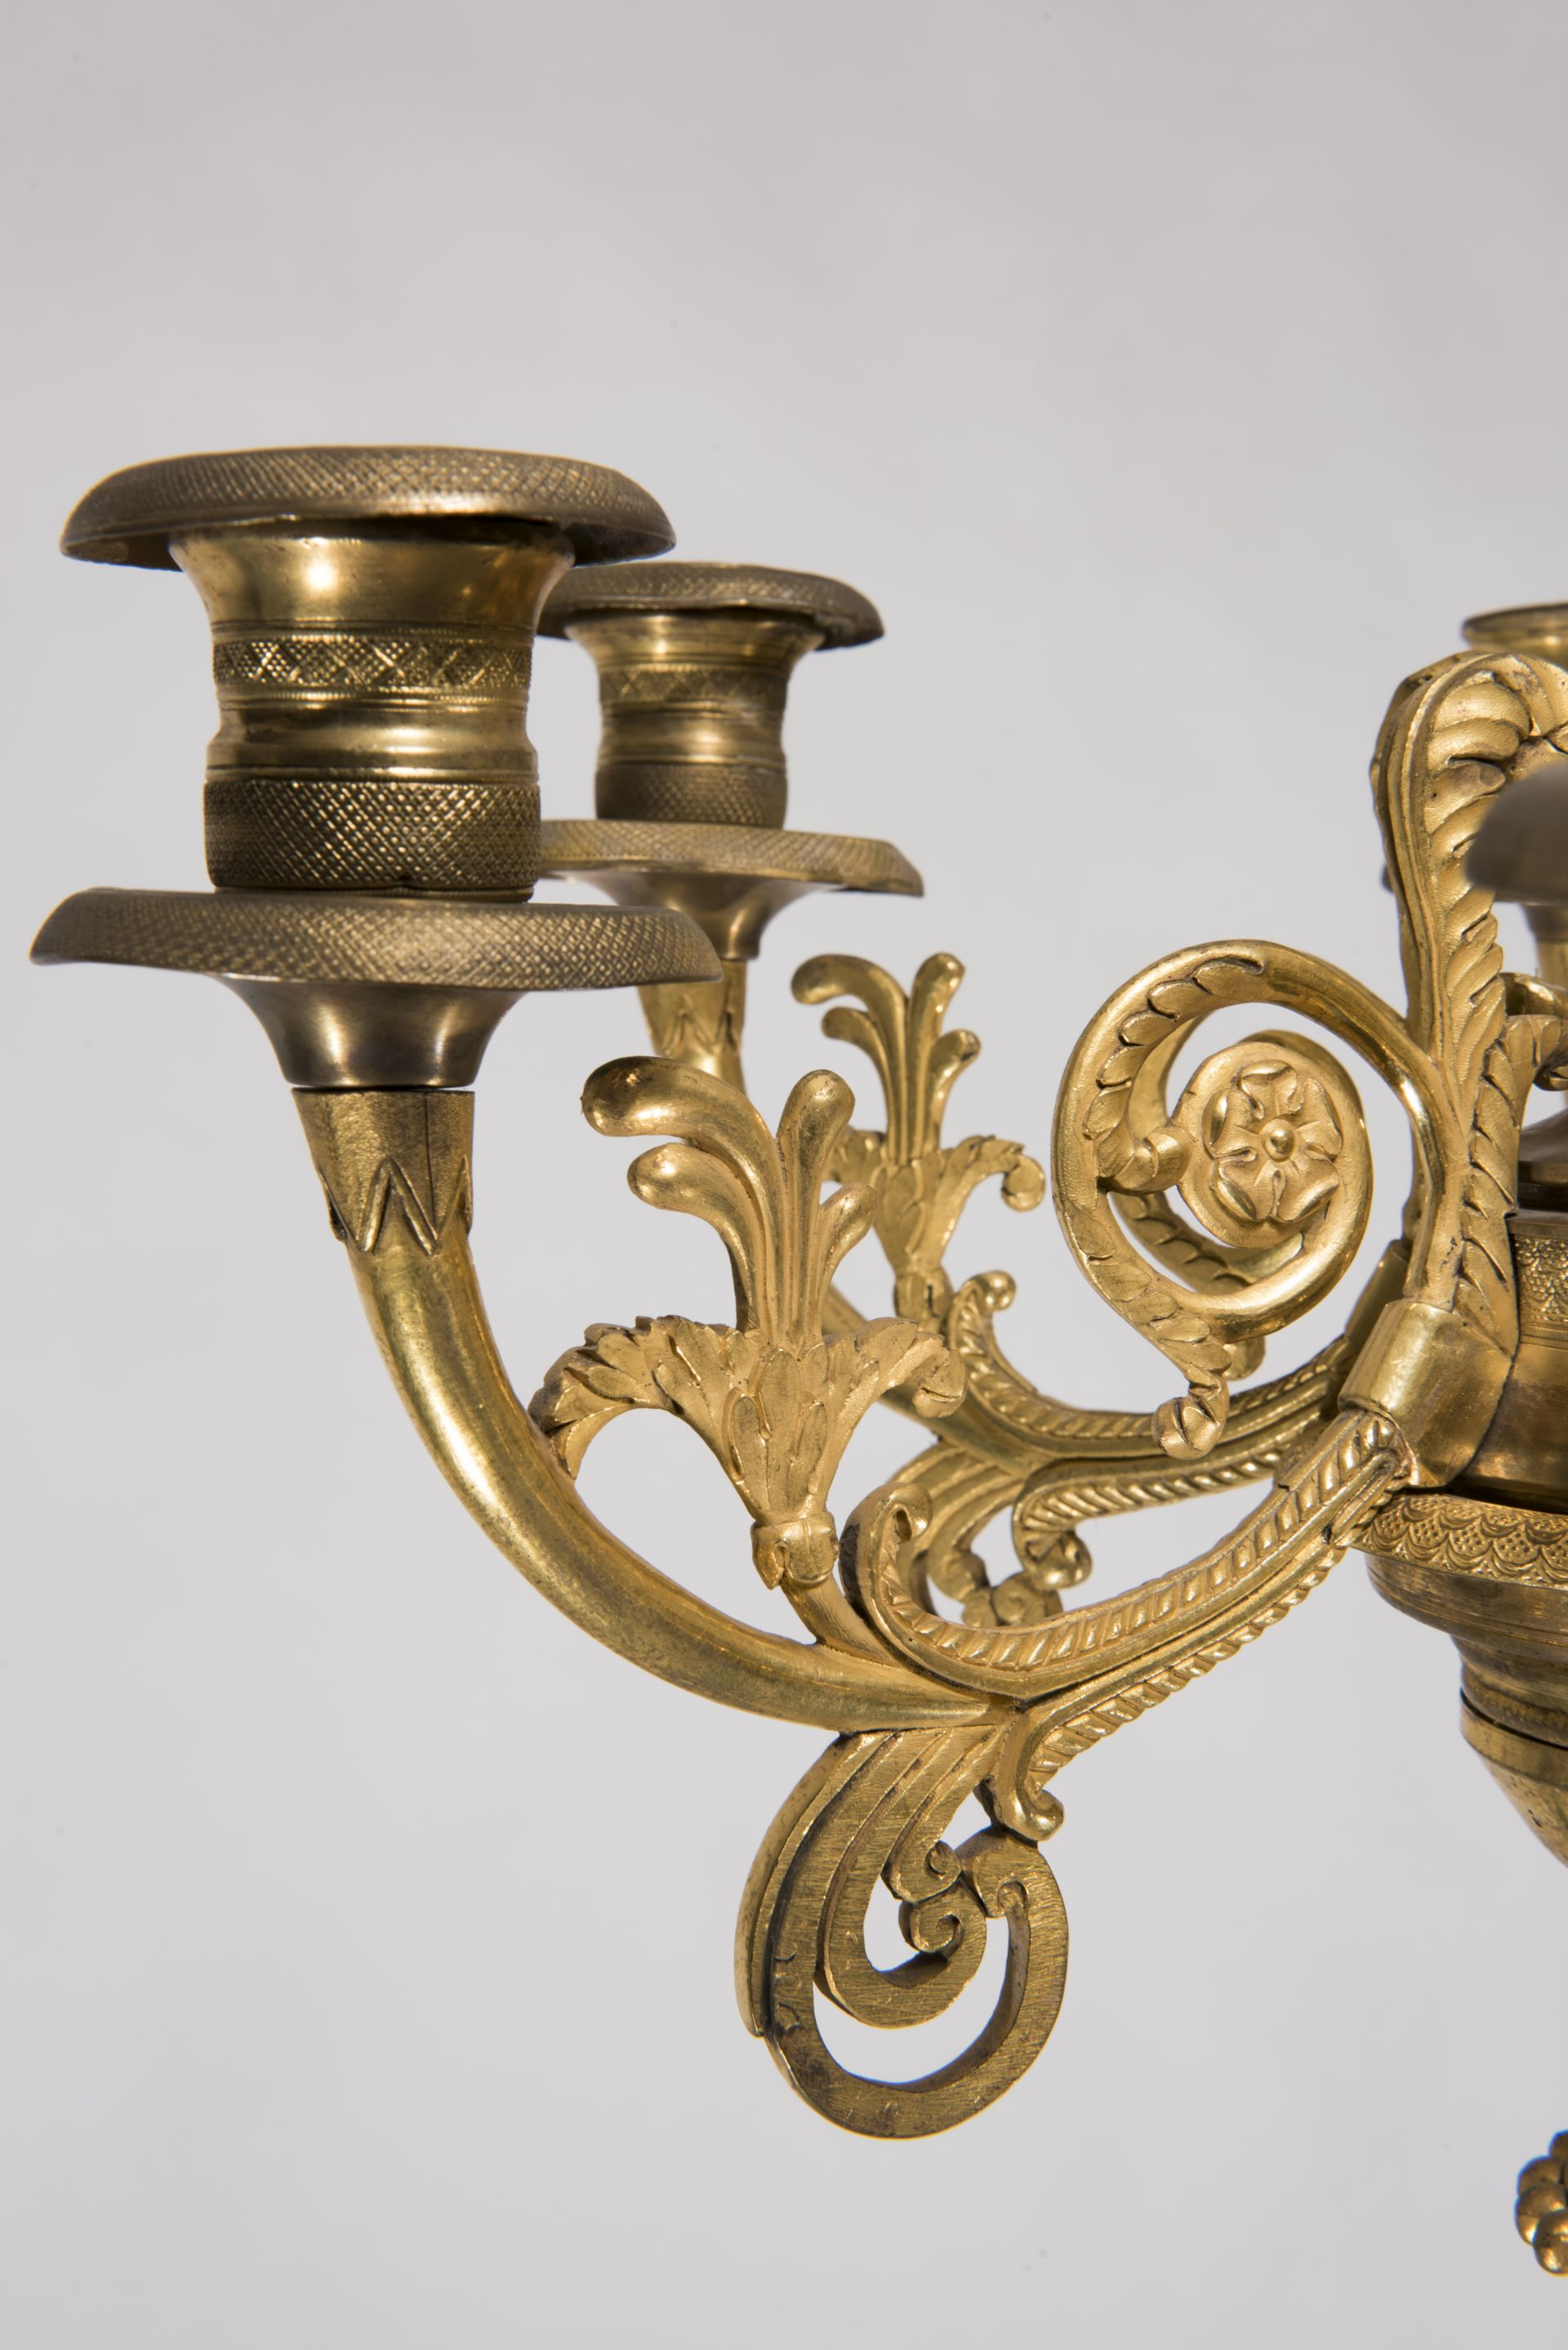 Fragment of chandelier, 1800–1849, National Museum of Lithuania, IM-4616. Photo by Kęstutis Stoškus, 2017